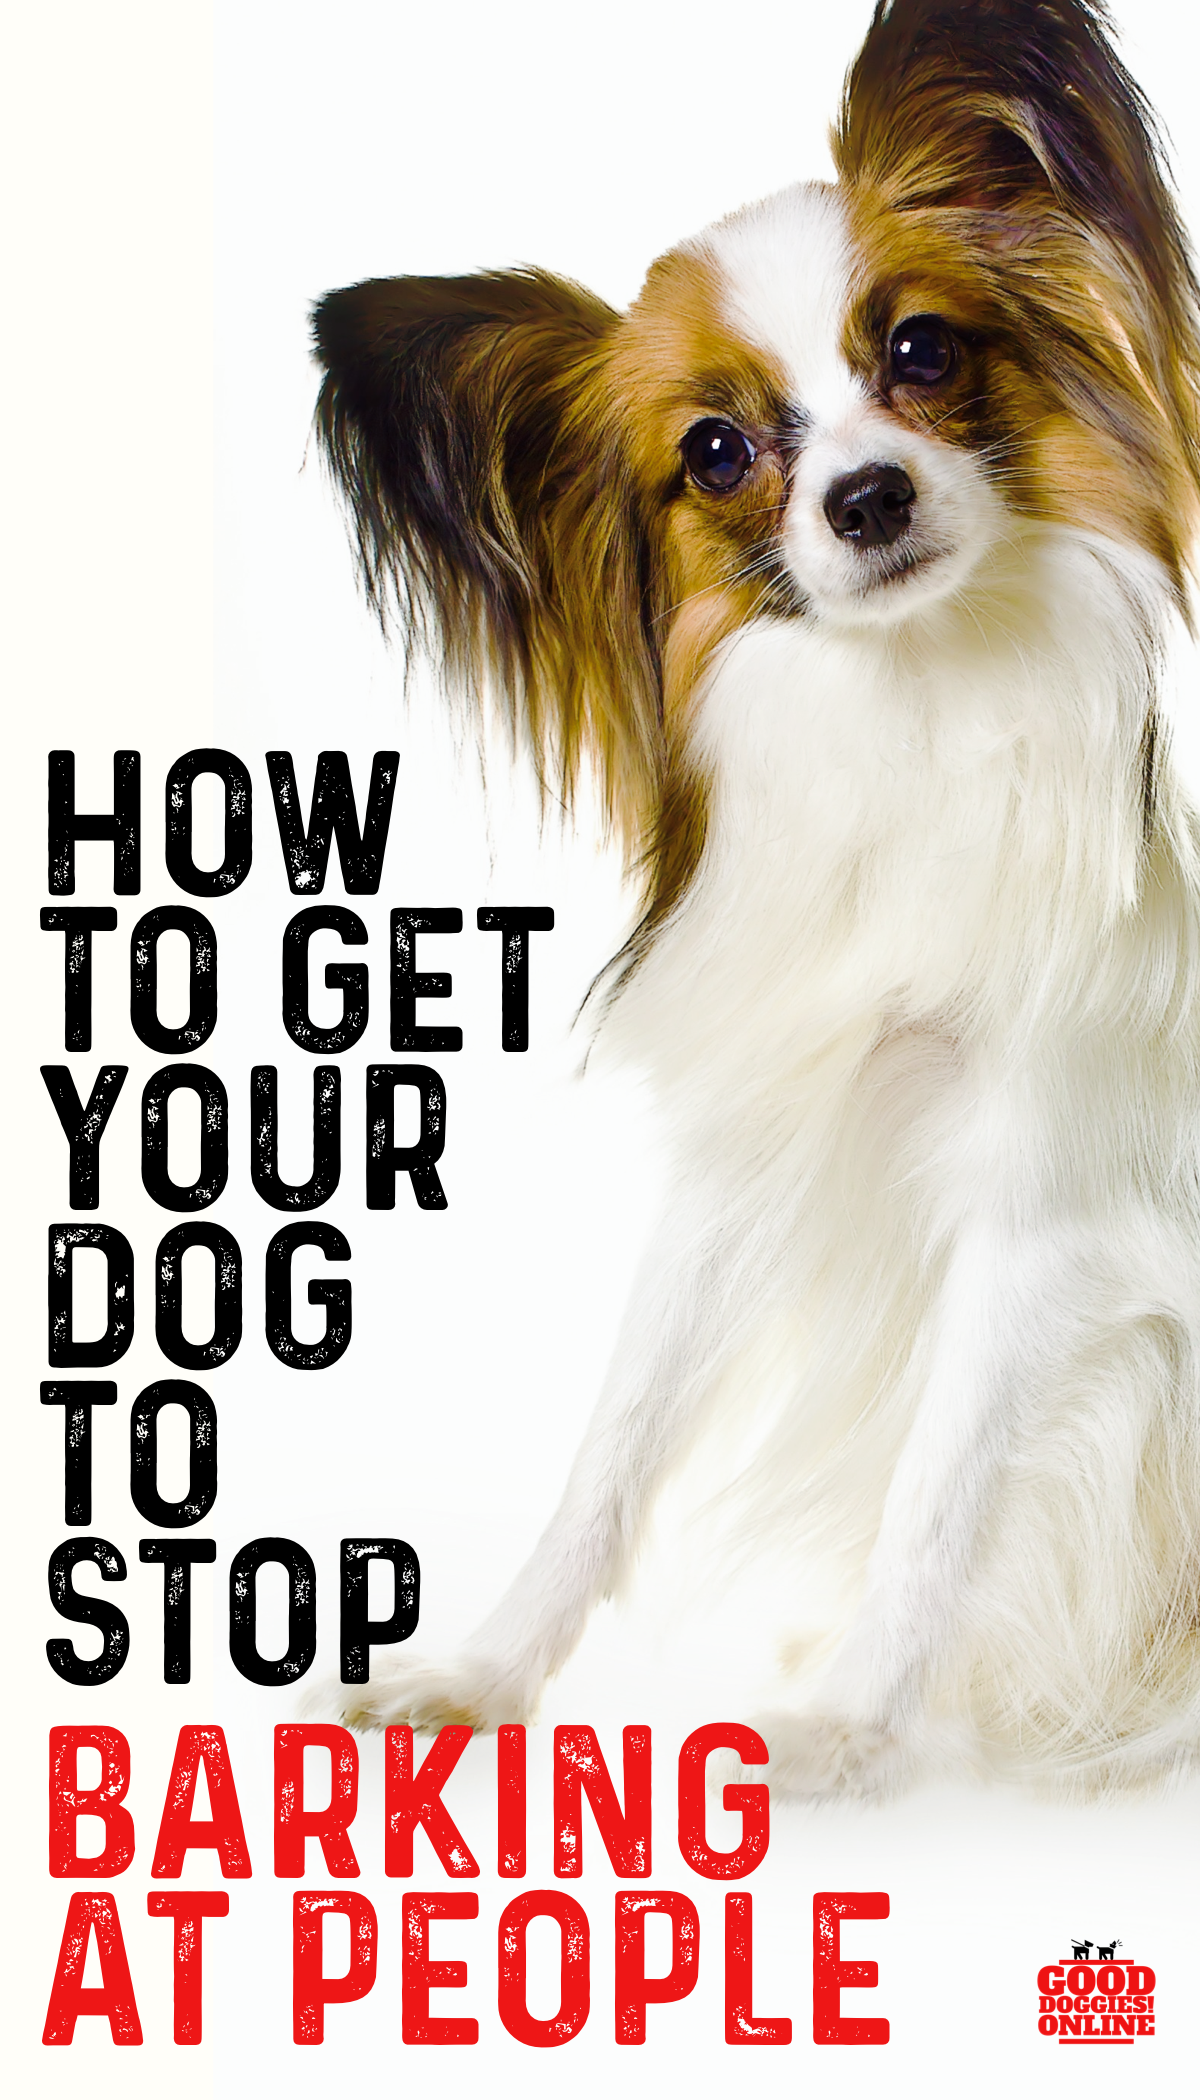 Top 5 Tips On How To Get A Dog To Stop Barking Good Diggies Online Dog Training Tips Easiest Dogs To Train Dog Training